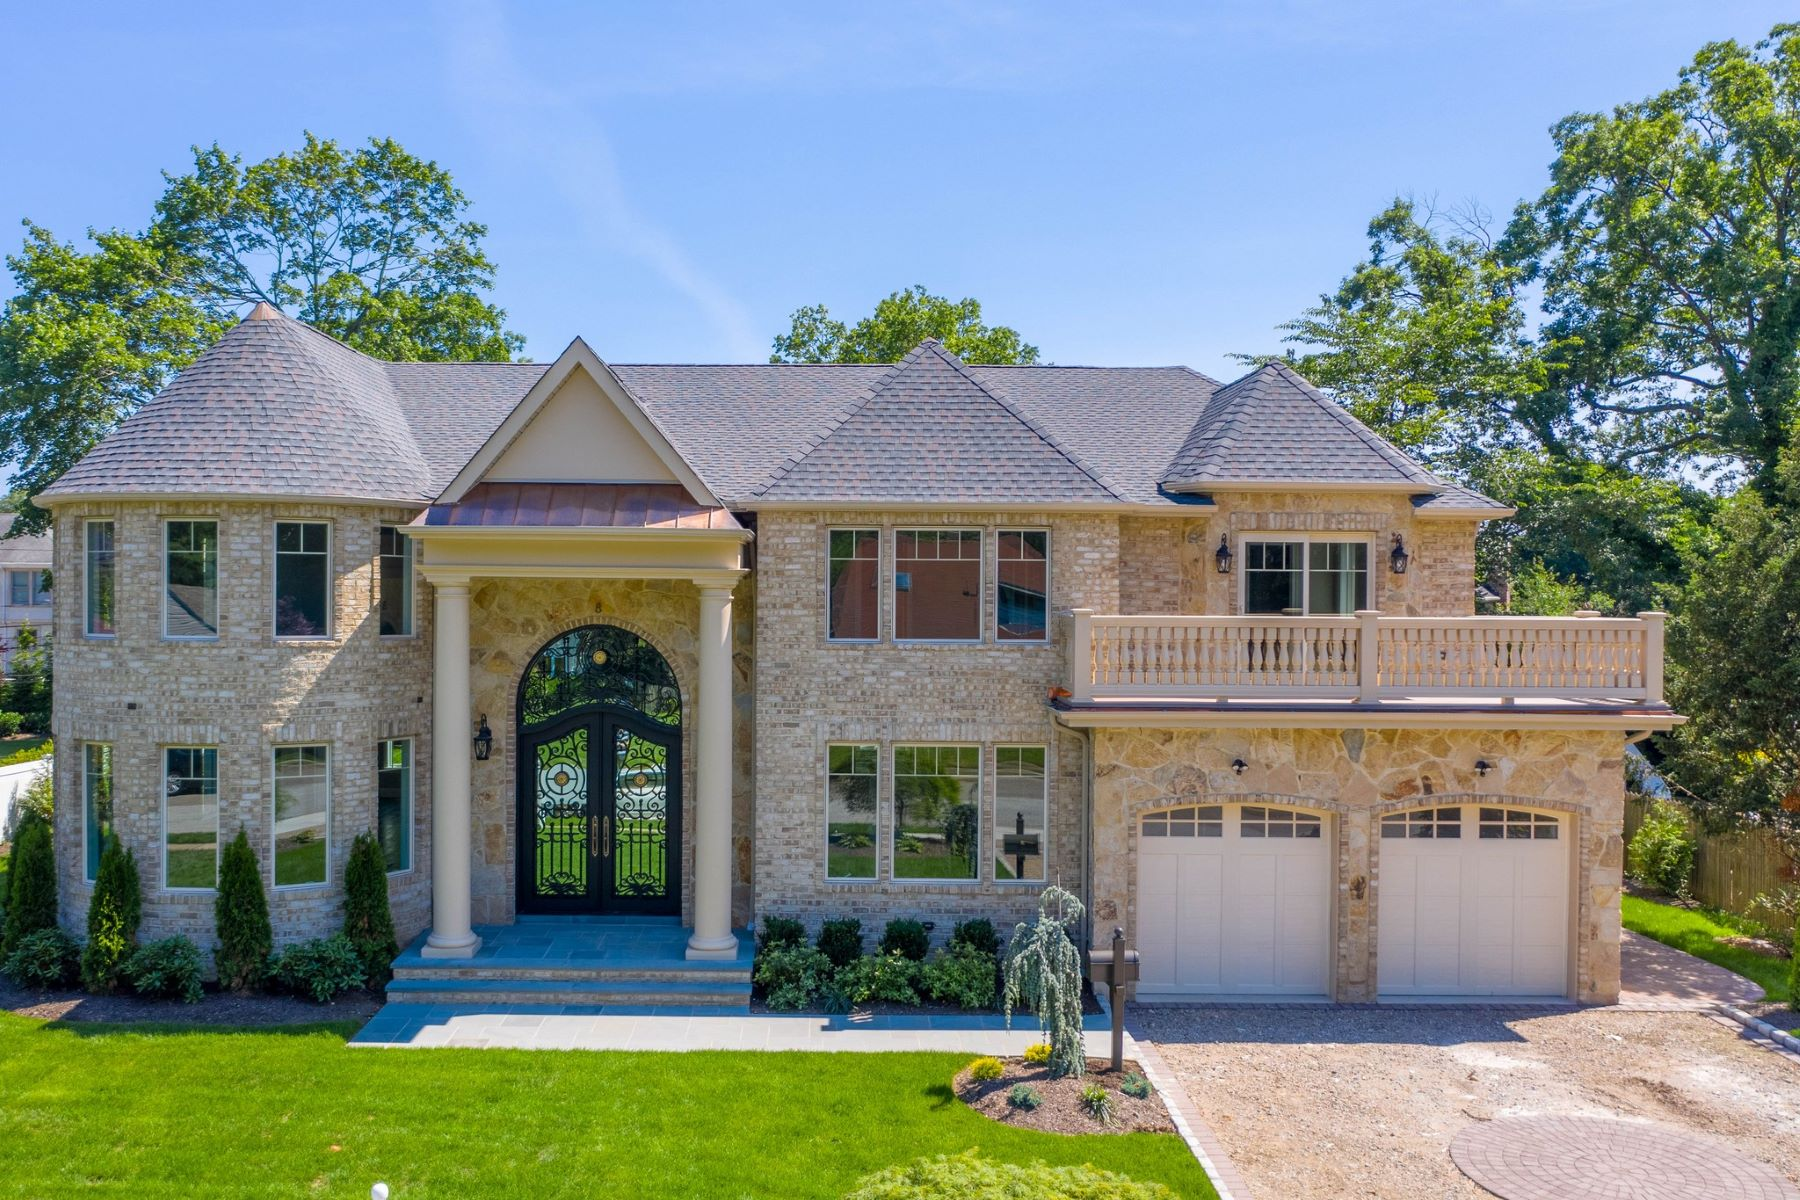 Single Family Homes for Active at Roslyn Heights 8 Clover Ln Roslyn Heights, New York 11577 United States